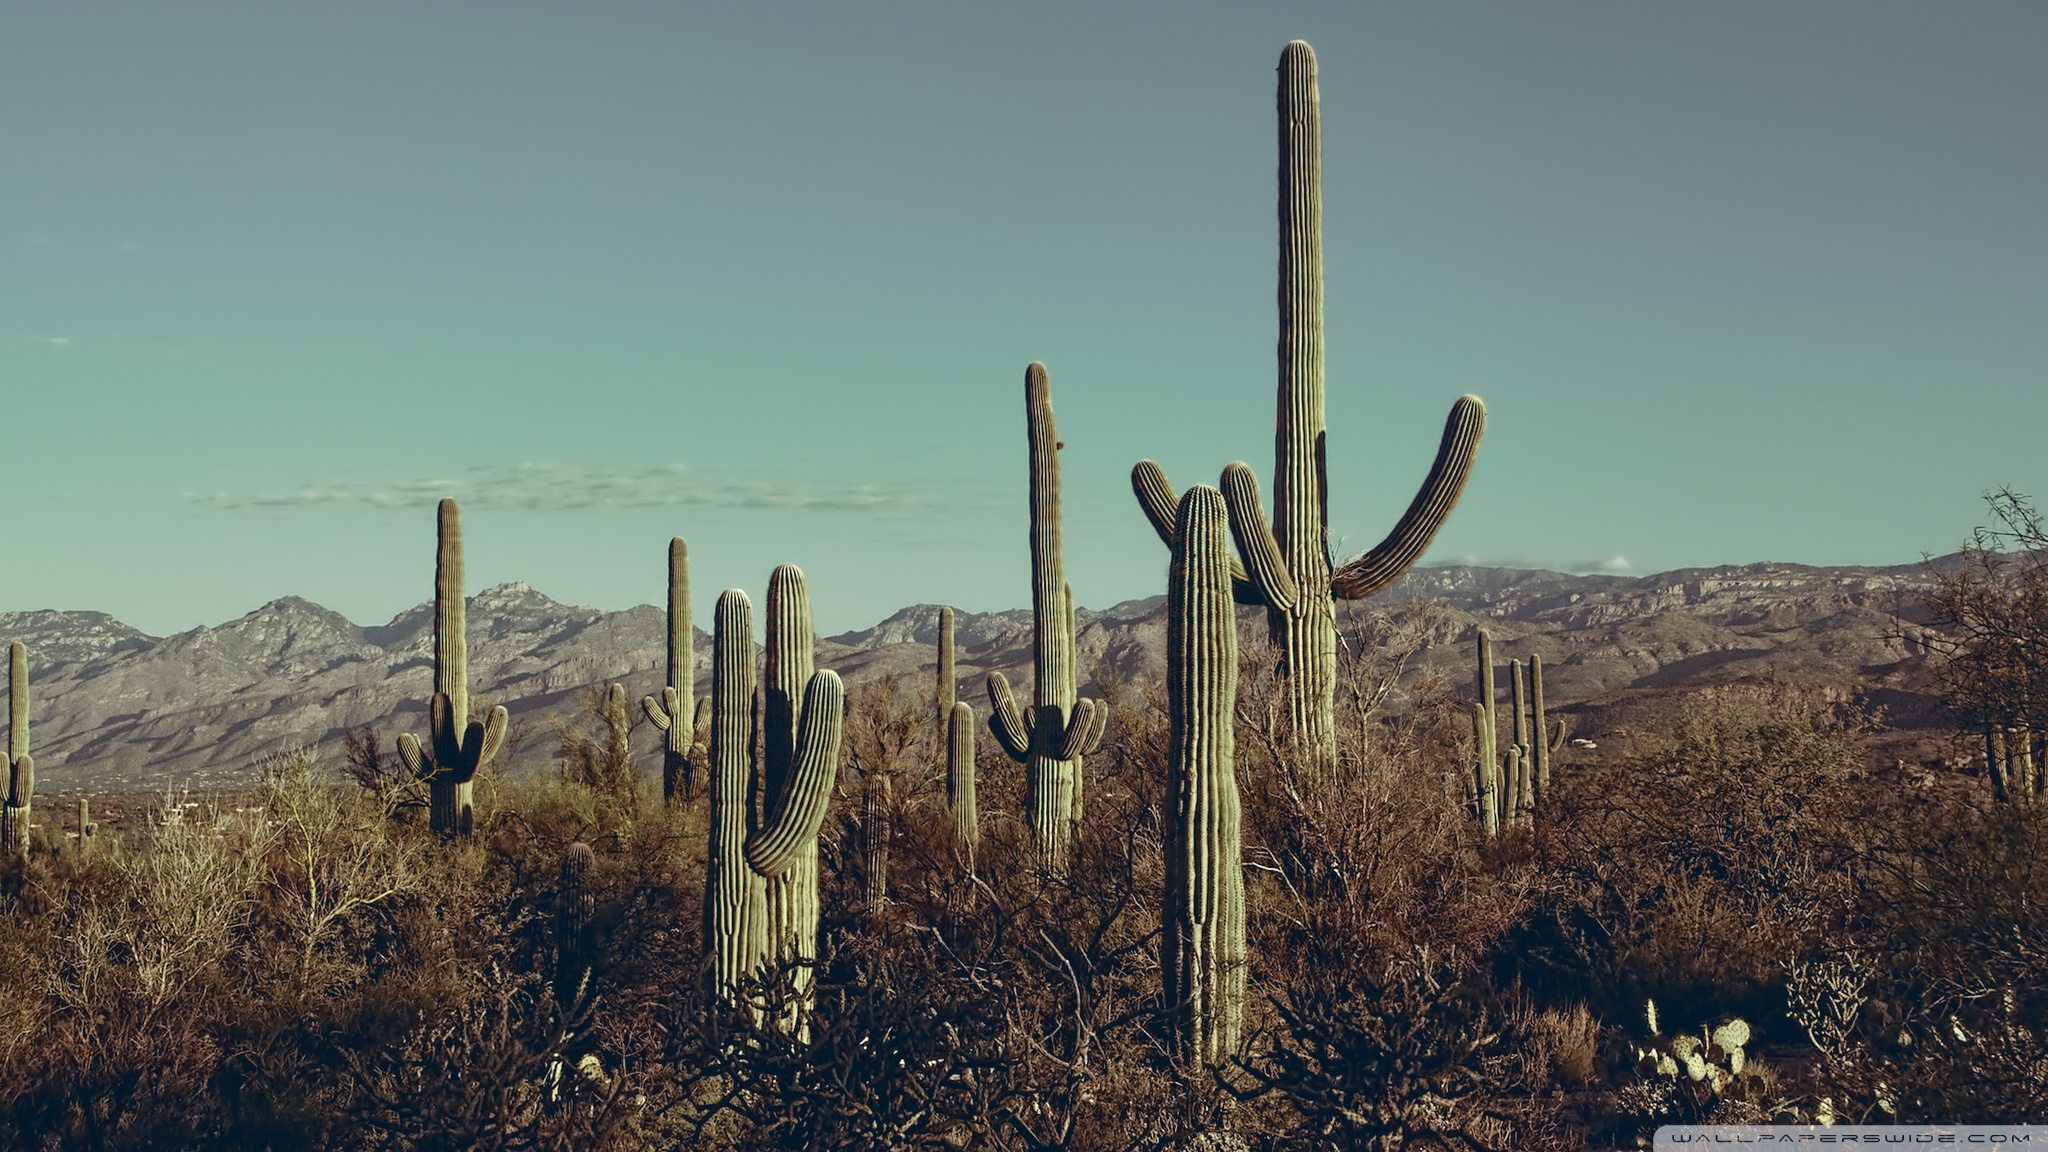 Saguaro National Park East Arizona 4K HD Desktop Wallpaper for 2048x1152